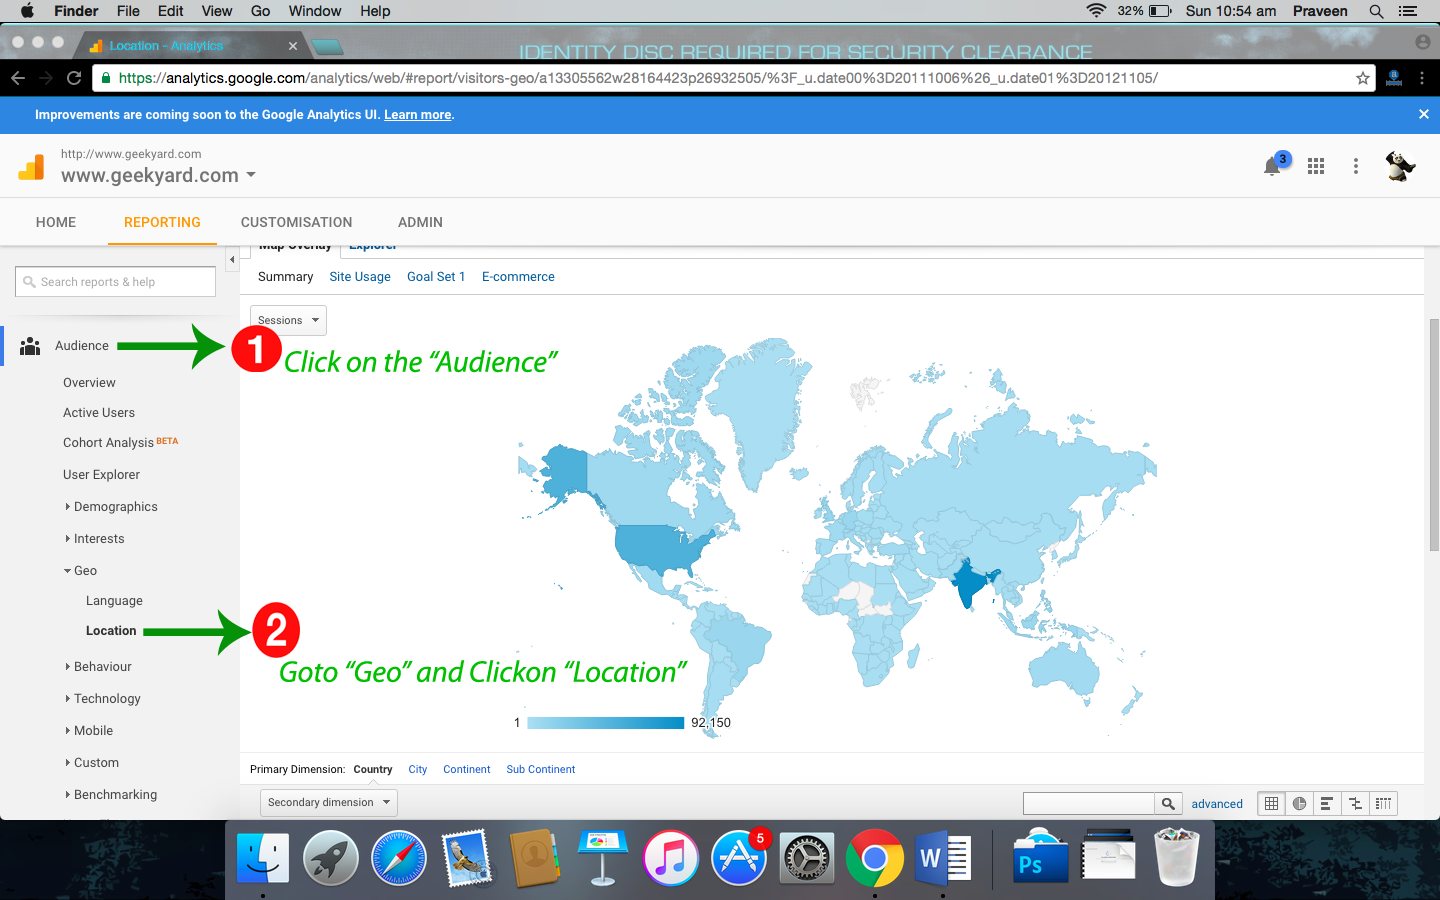 Google Analytics tool Geolocation